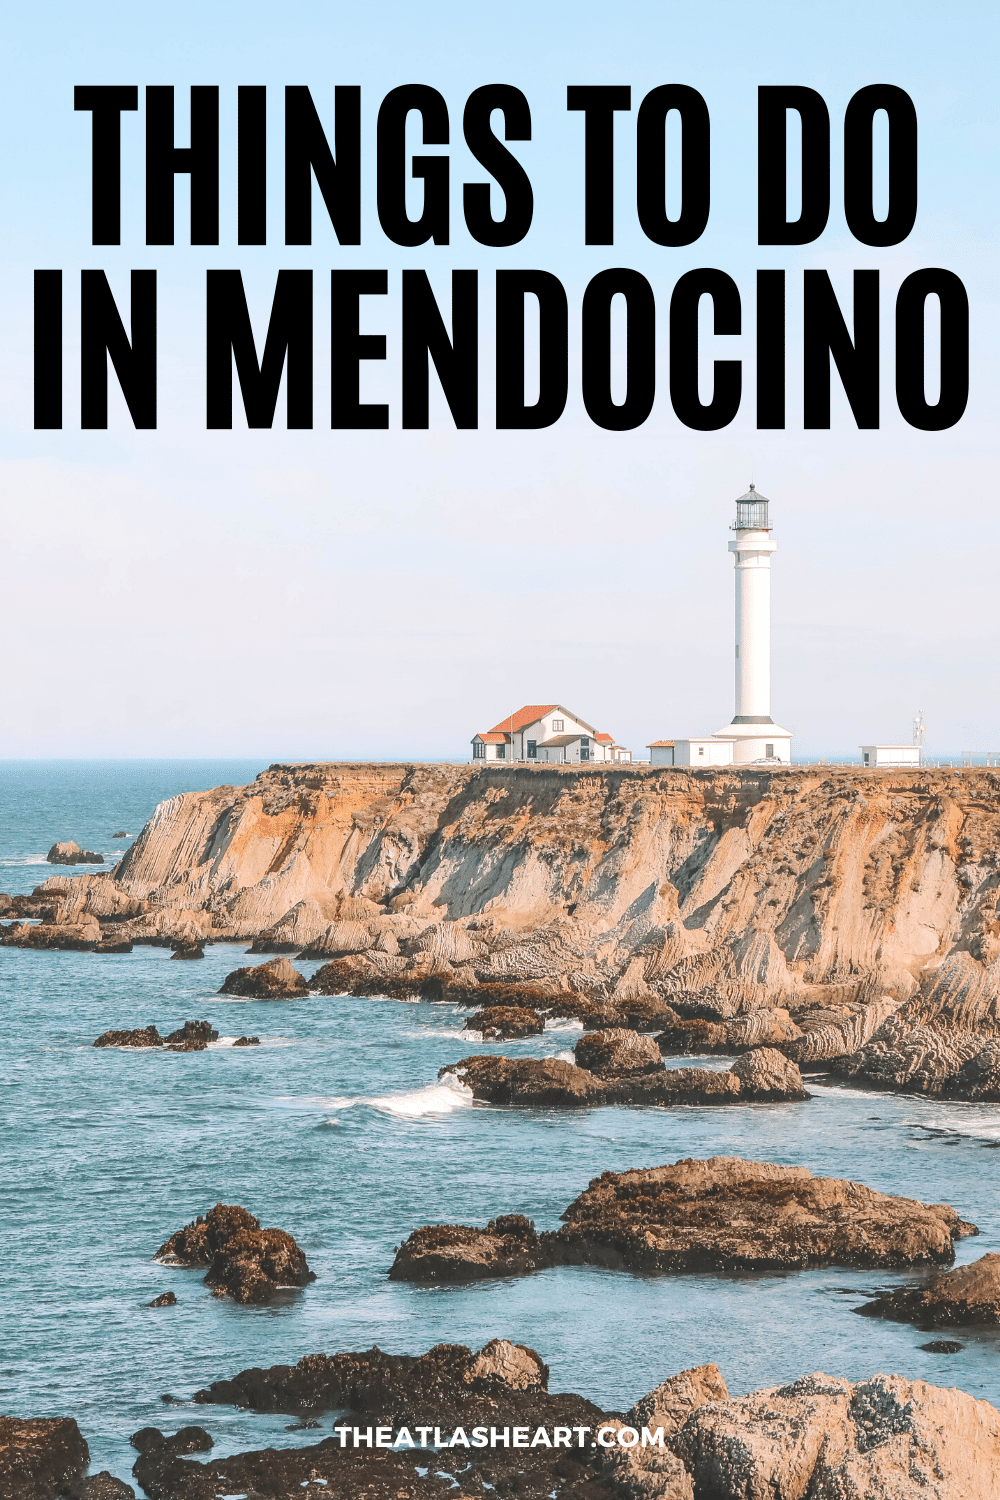 31 Things to do in Mendocino, California for the Perfect Weekend Away